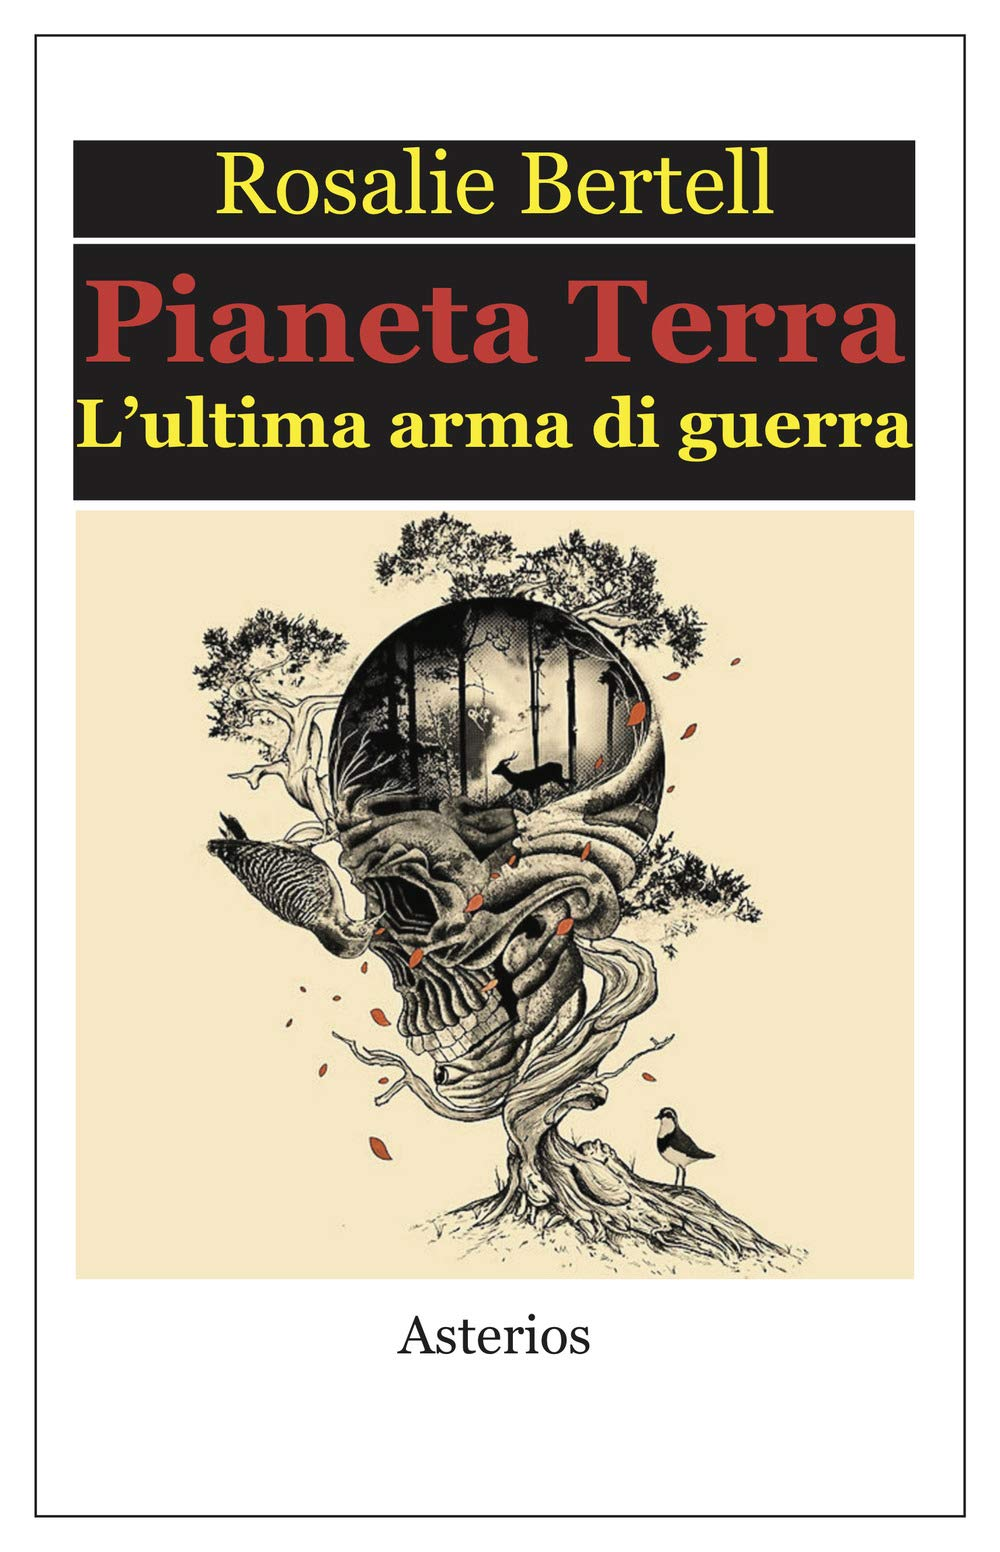 Resultado de imagem para pictures of Pianeta terra. L'ultima arma di guerra - di Rosalie Bertell.